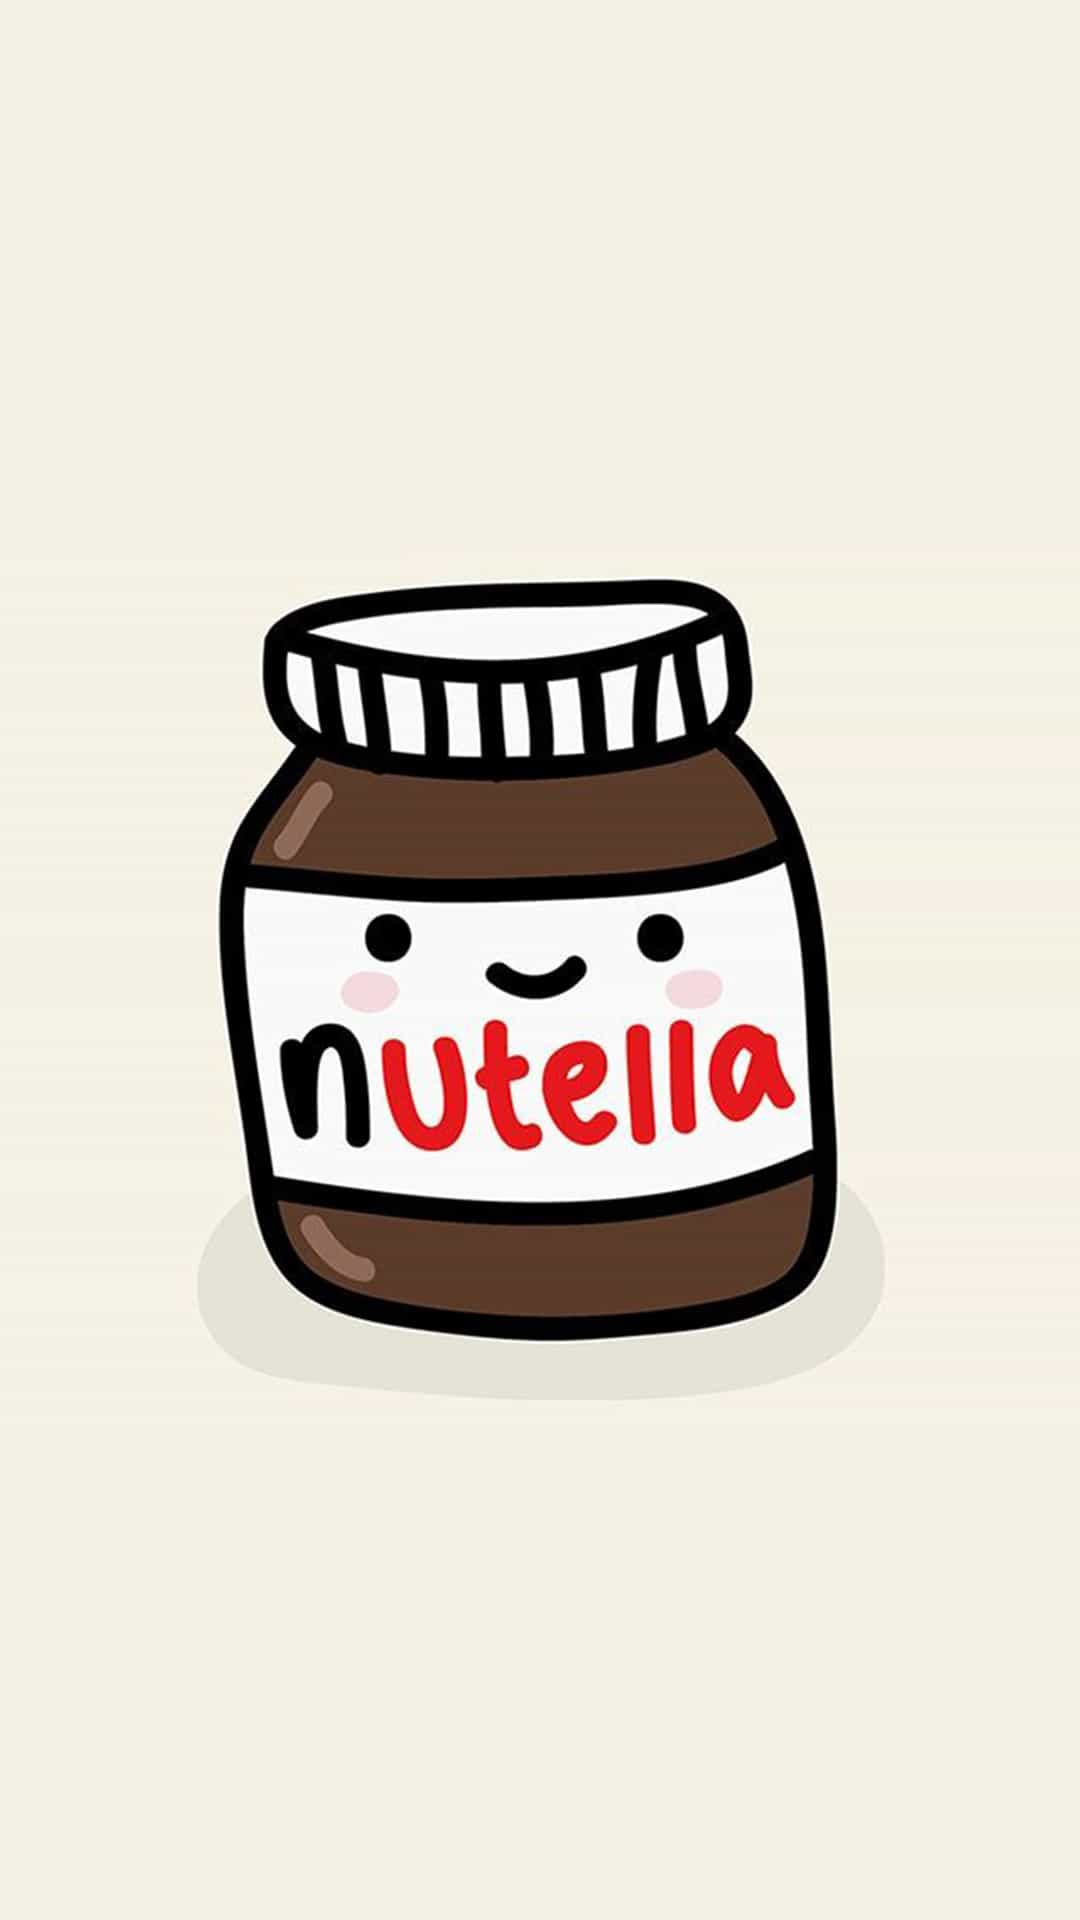 Cute Nutella Jar Illustration Android Wallpaper